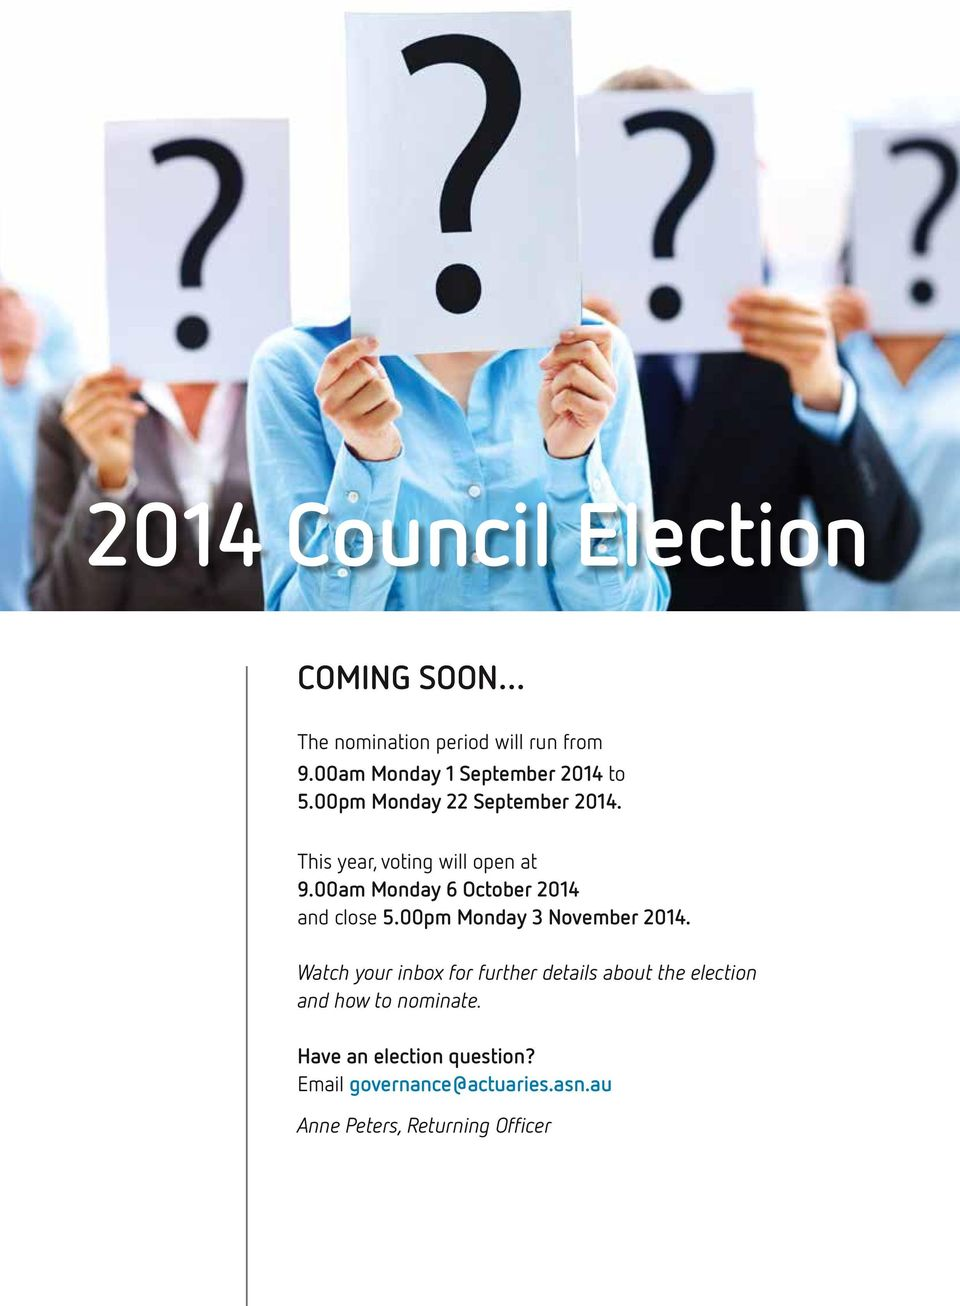 00pm Monday 3 November 2014. Watch your inbox for further details about the election and how to nominate.